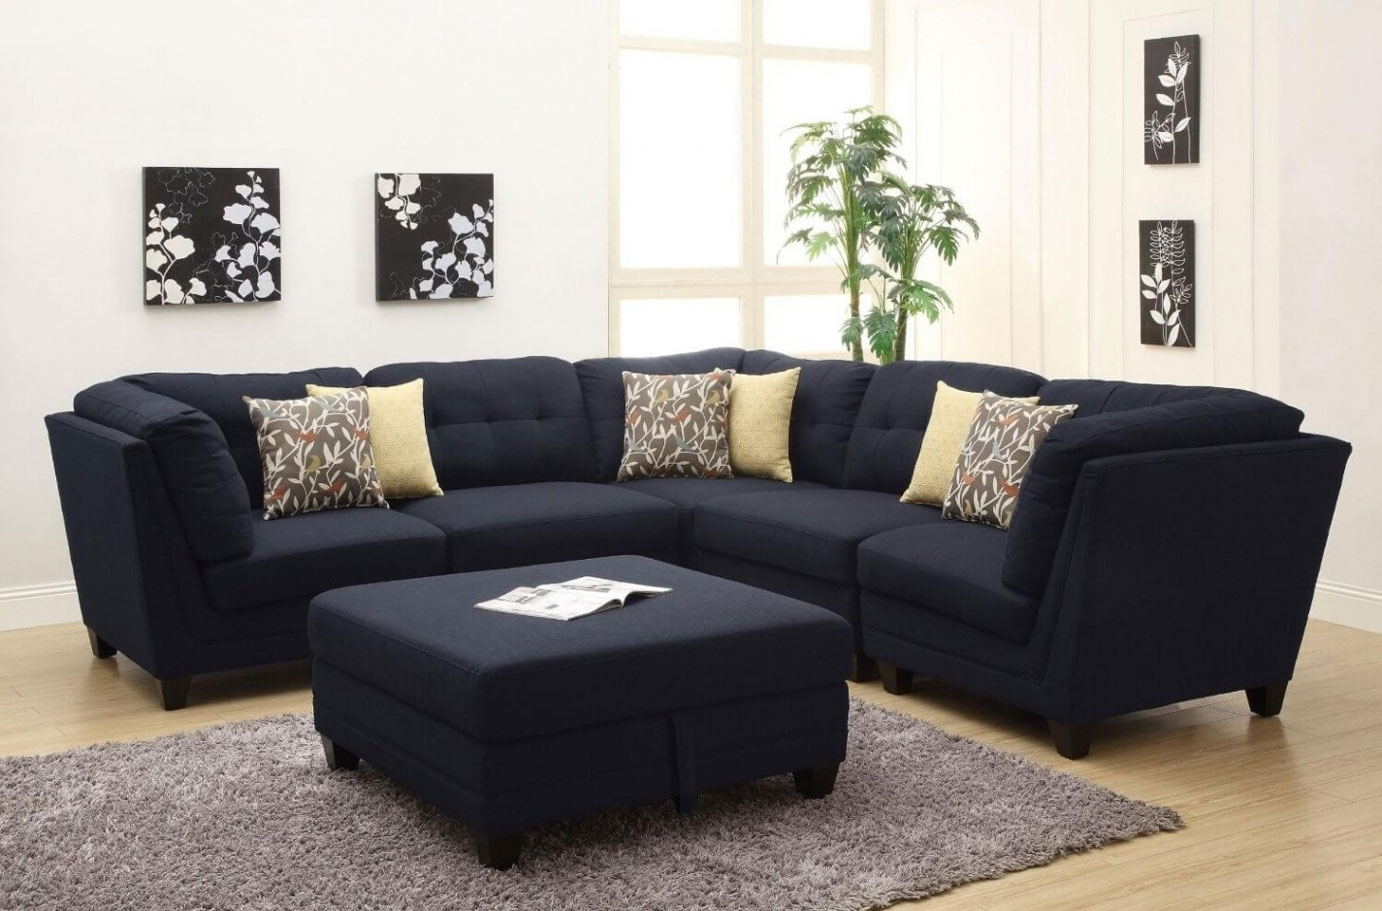 Sectional Sofa: Most Recommended Sectional Sofas Under $1000 Cheap With Regard To Grande Prairie Ab Sectional Sofas (Image 10 of 10)